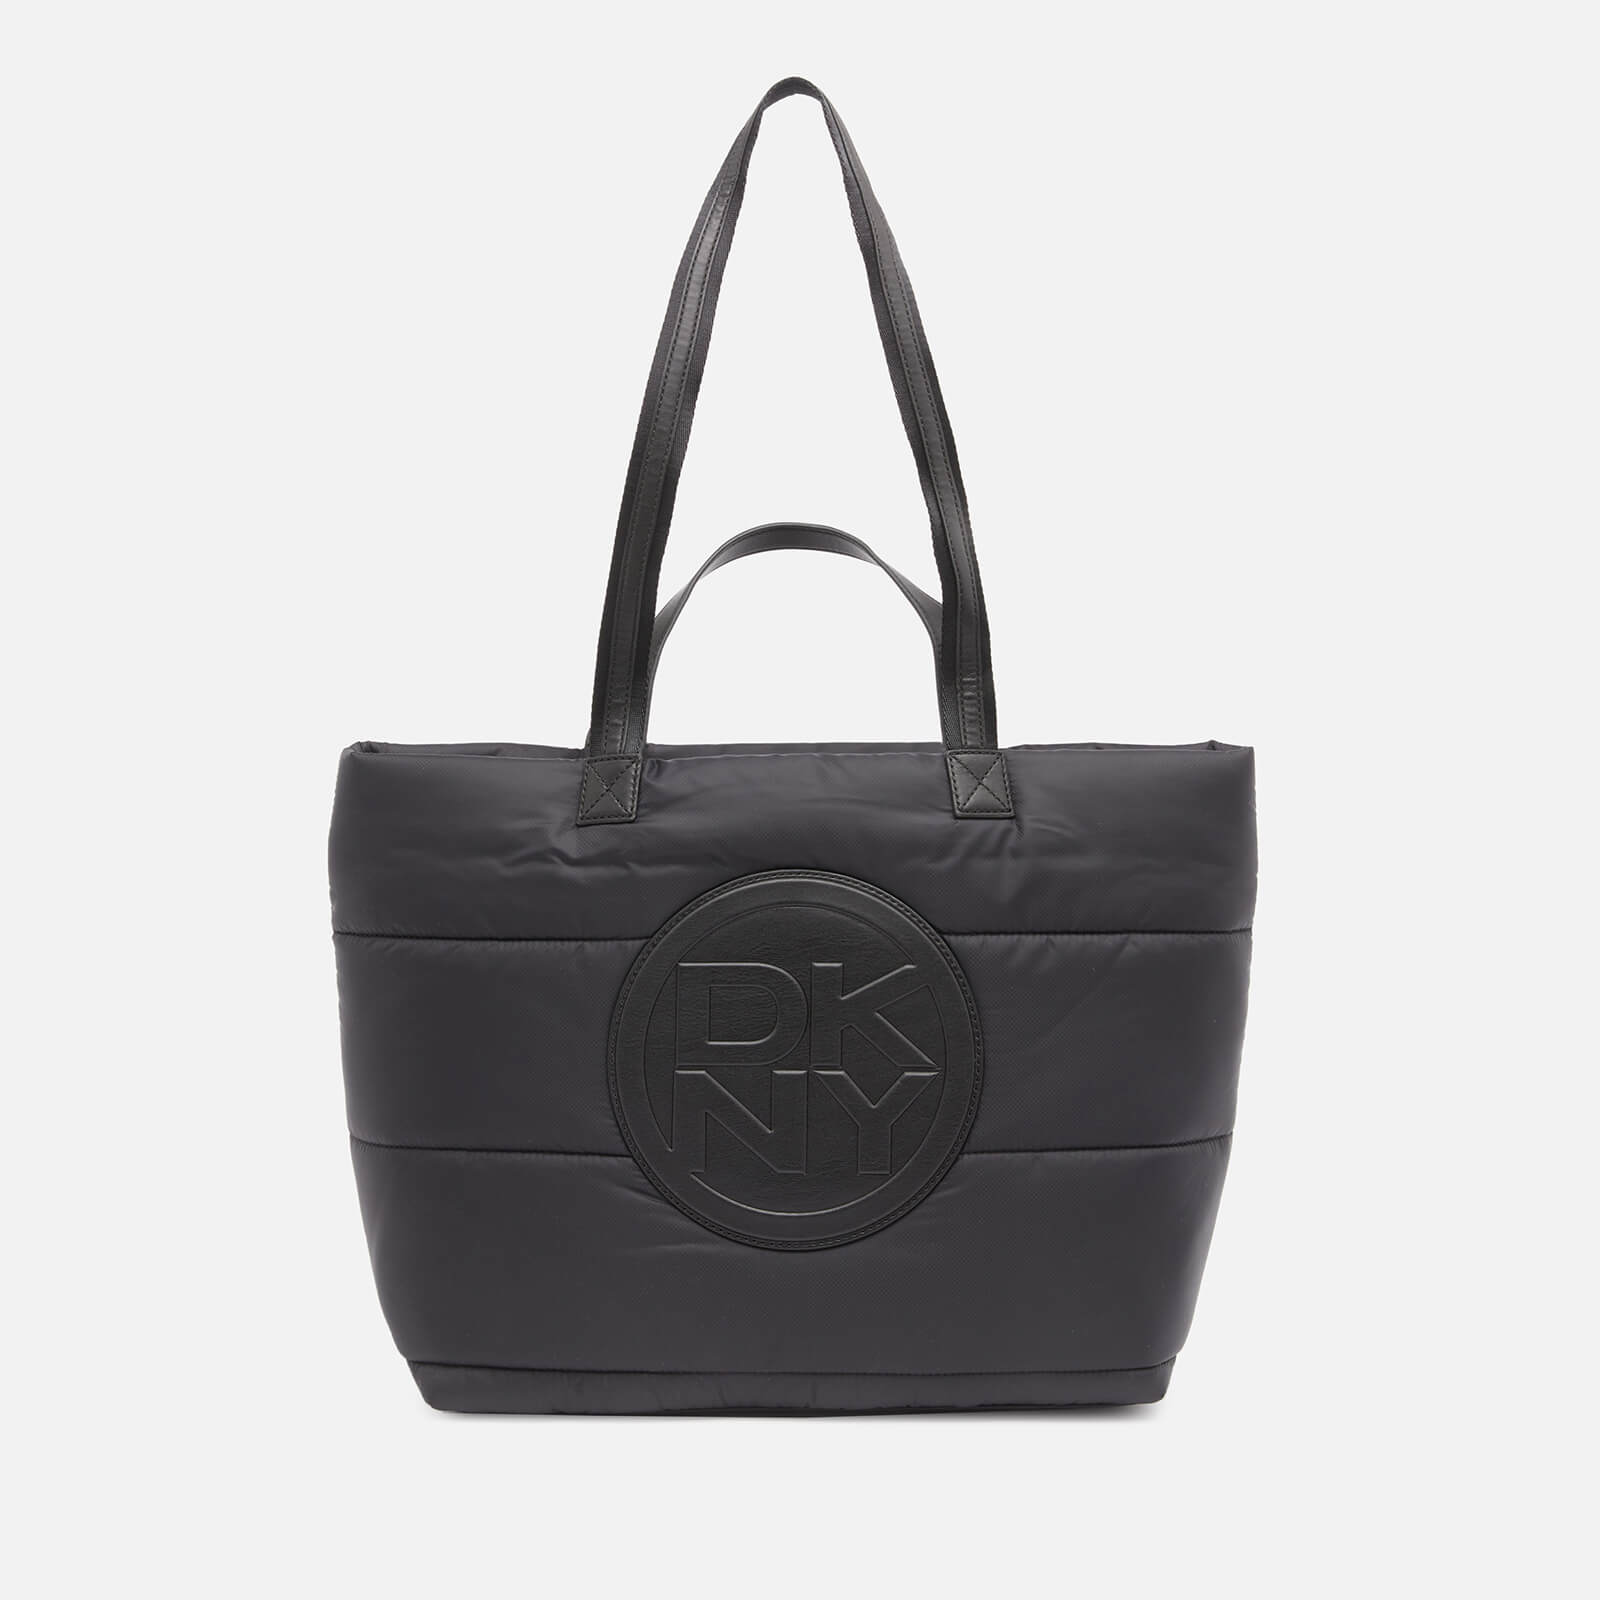 DKNY Women's Toby Quilted Nylon Tote Bag - Black